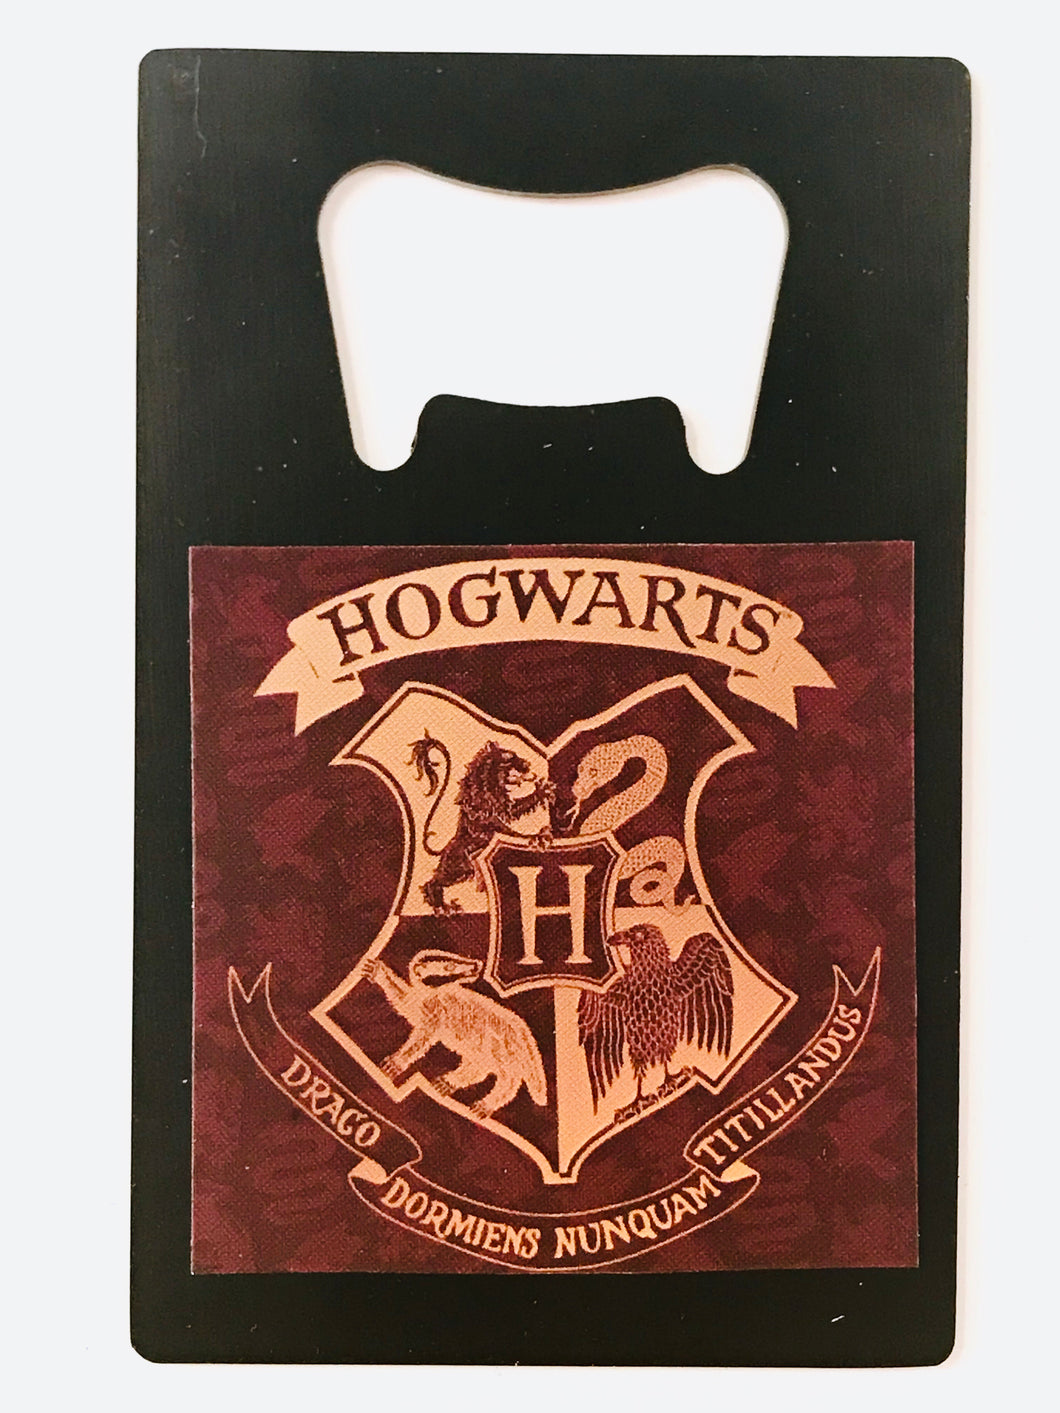 Hogwarts Bottle Opener